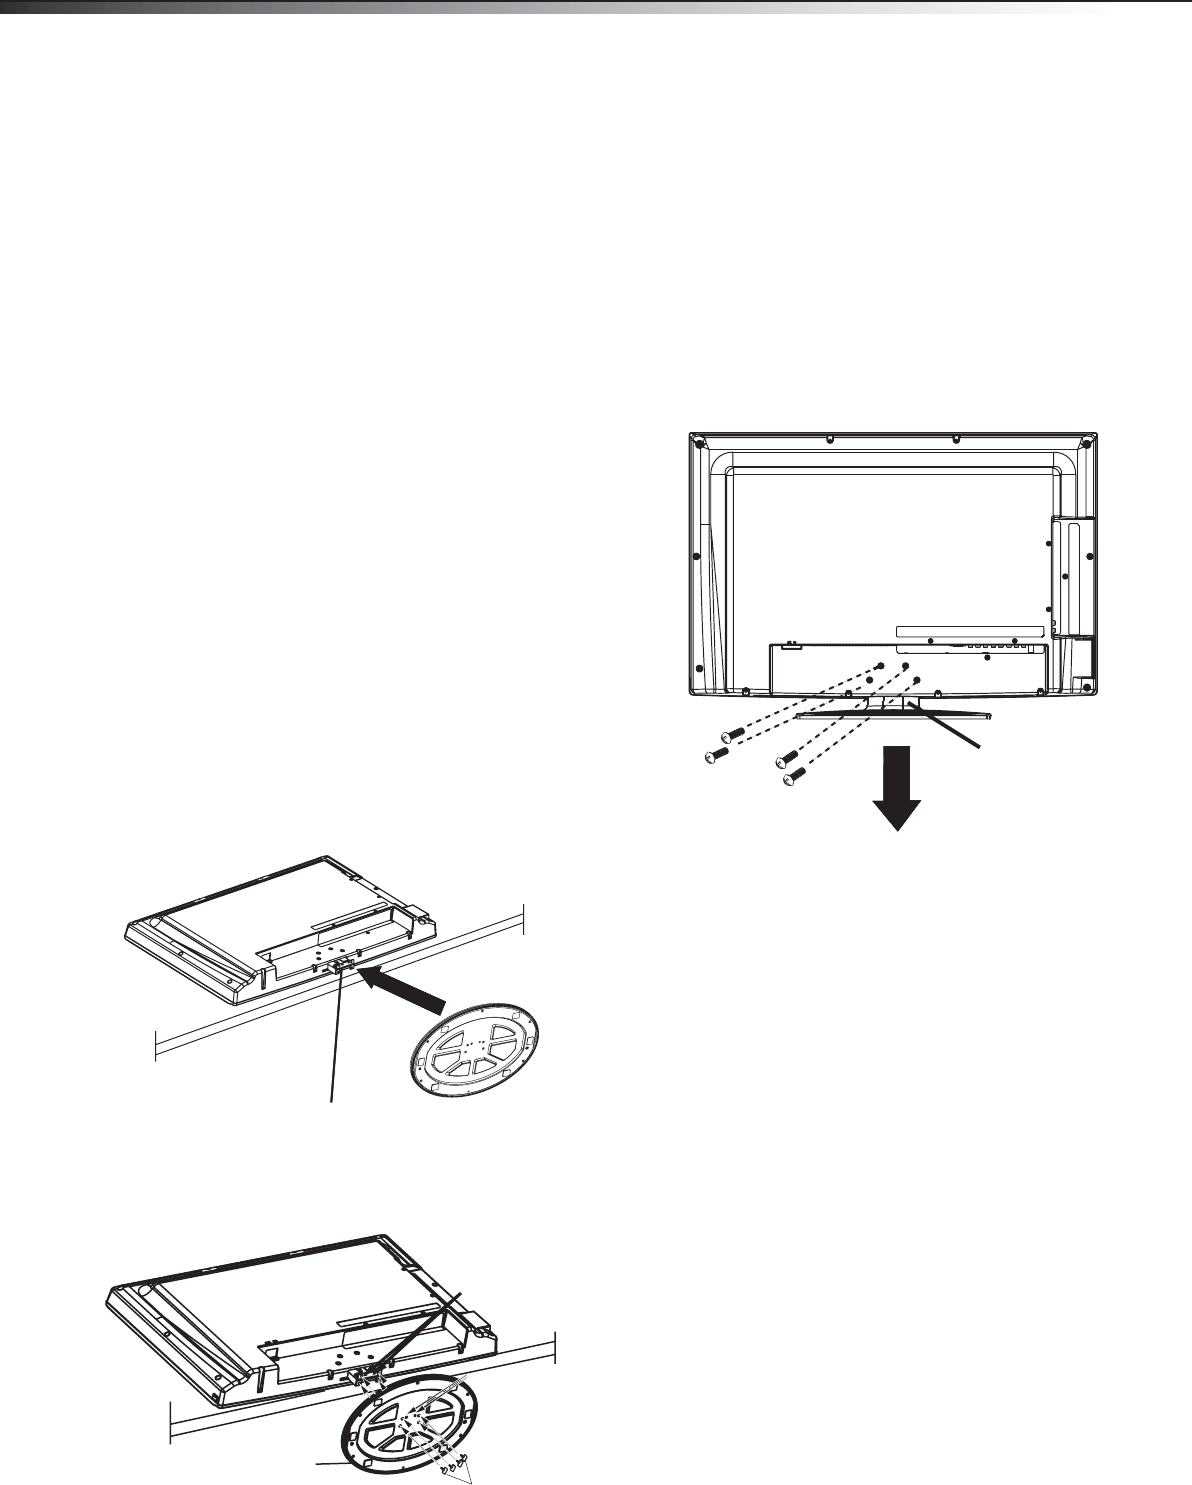 Page 8 of Dynex Flat Panel Television DX-32L151A11 User